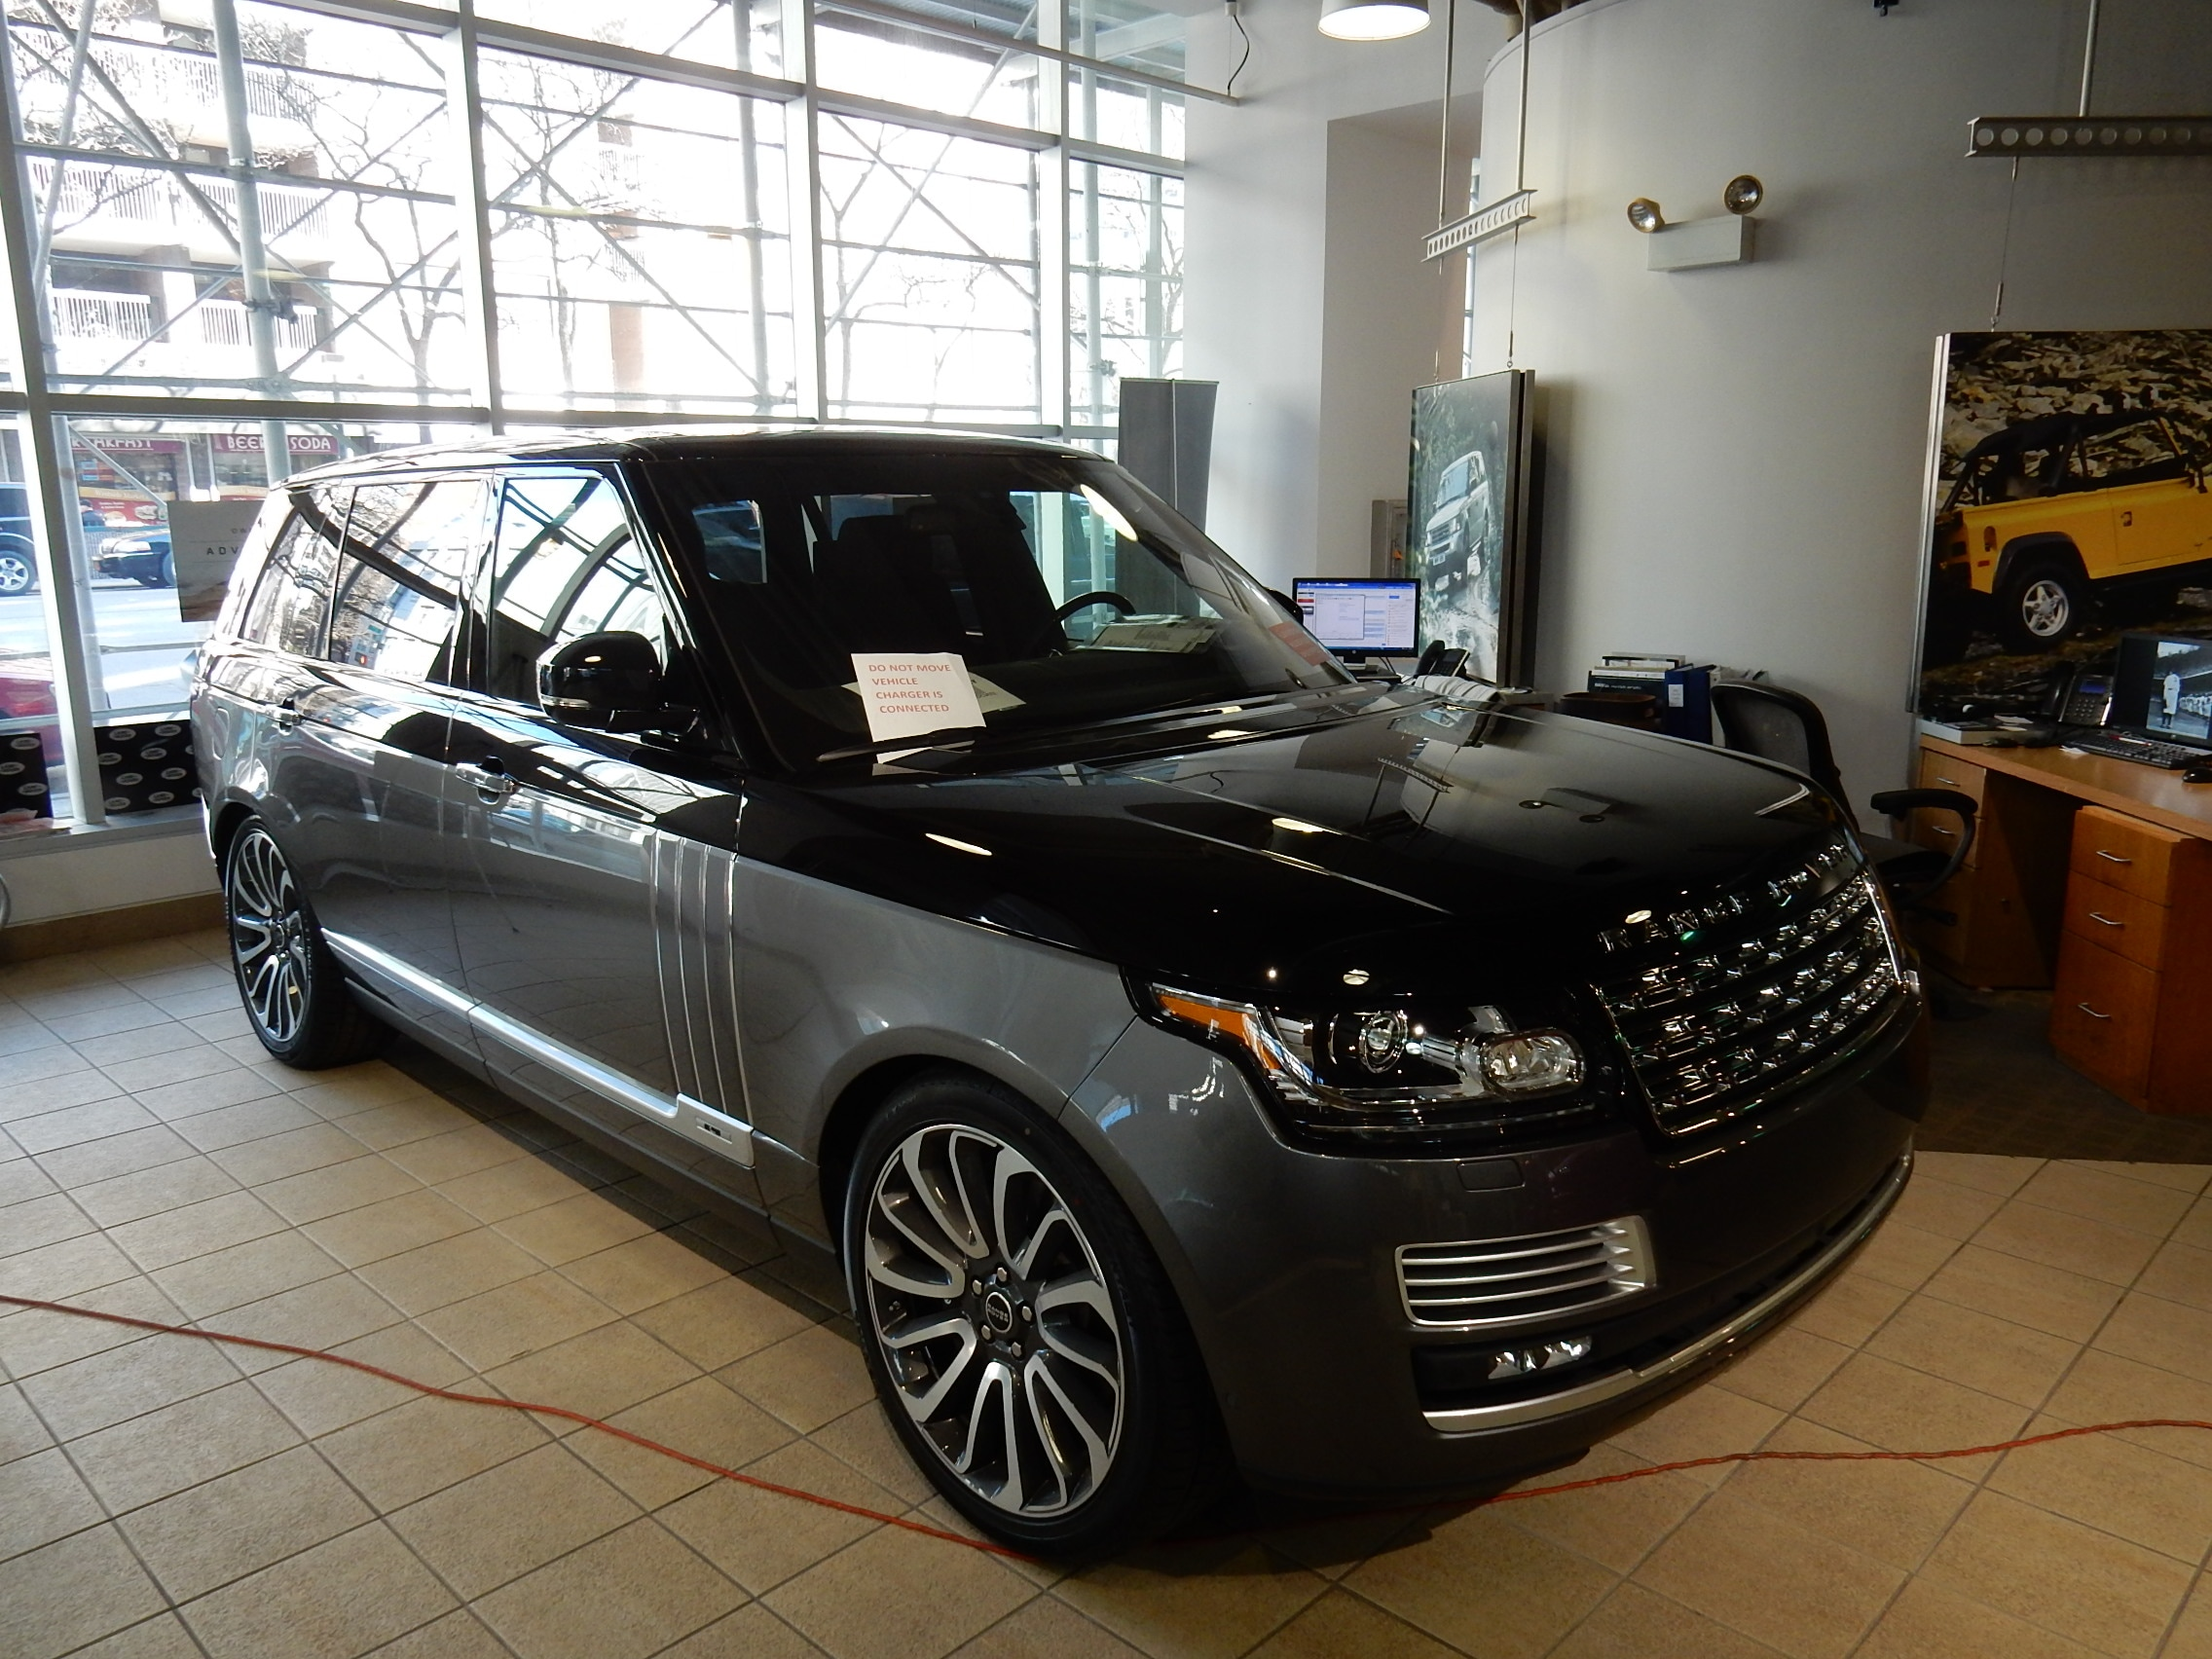 land rover manhattan vehicles for sale in new york ny 10019. Black Bedroom Furniture Sets. Home Design Ideas